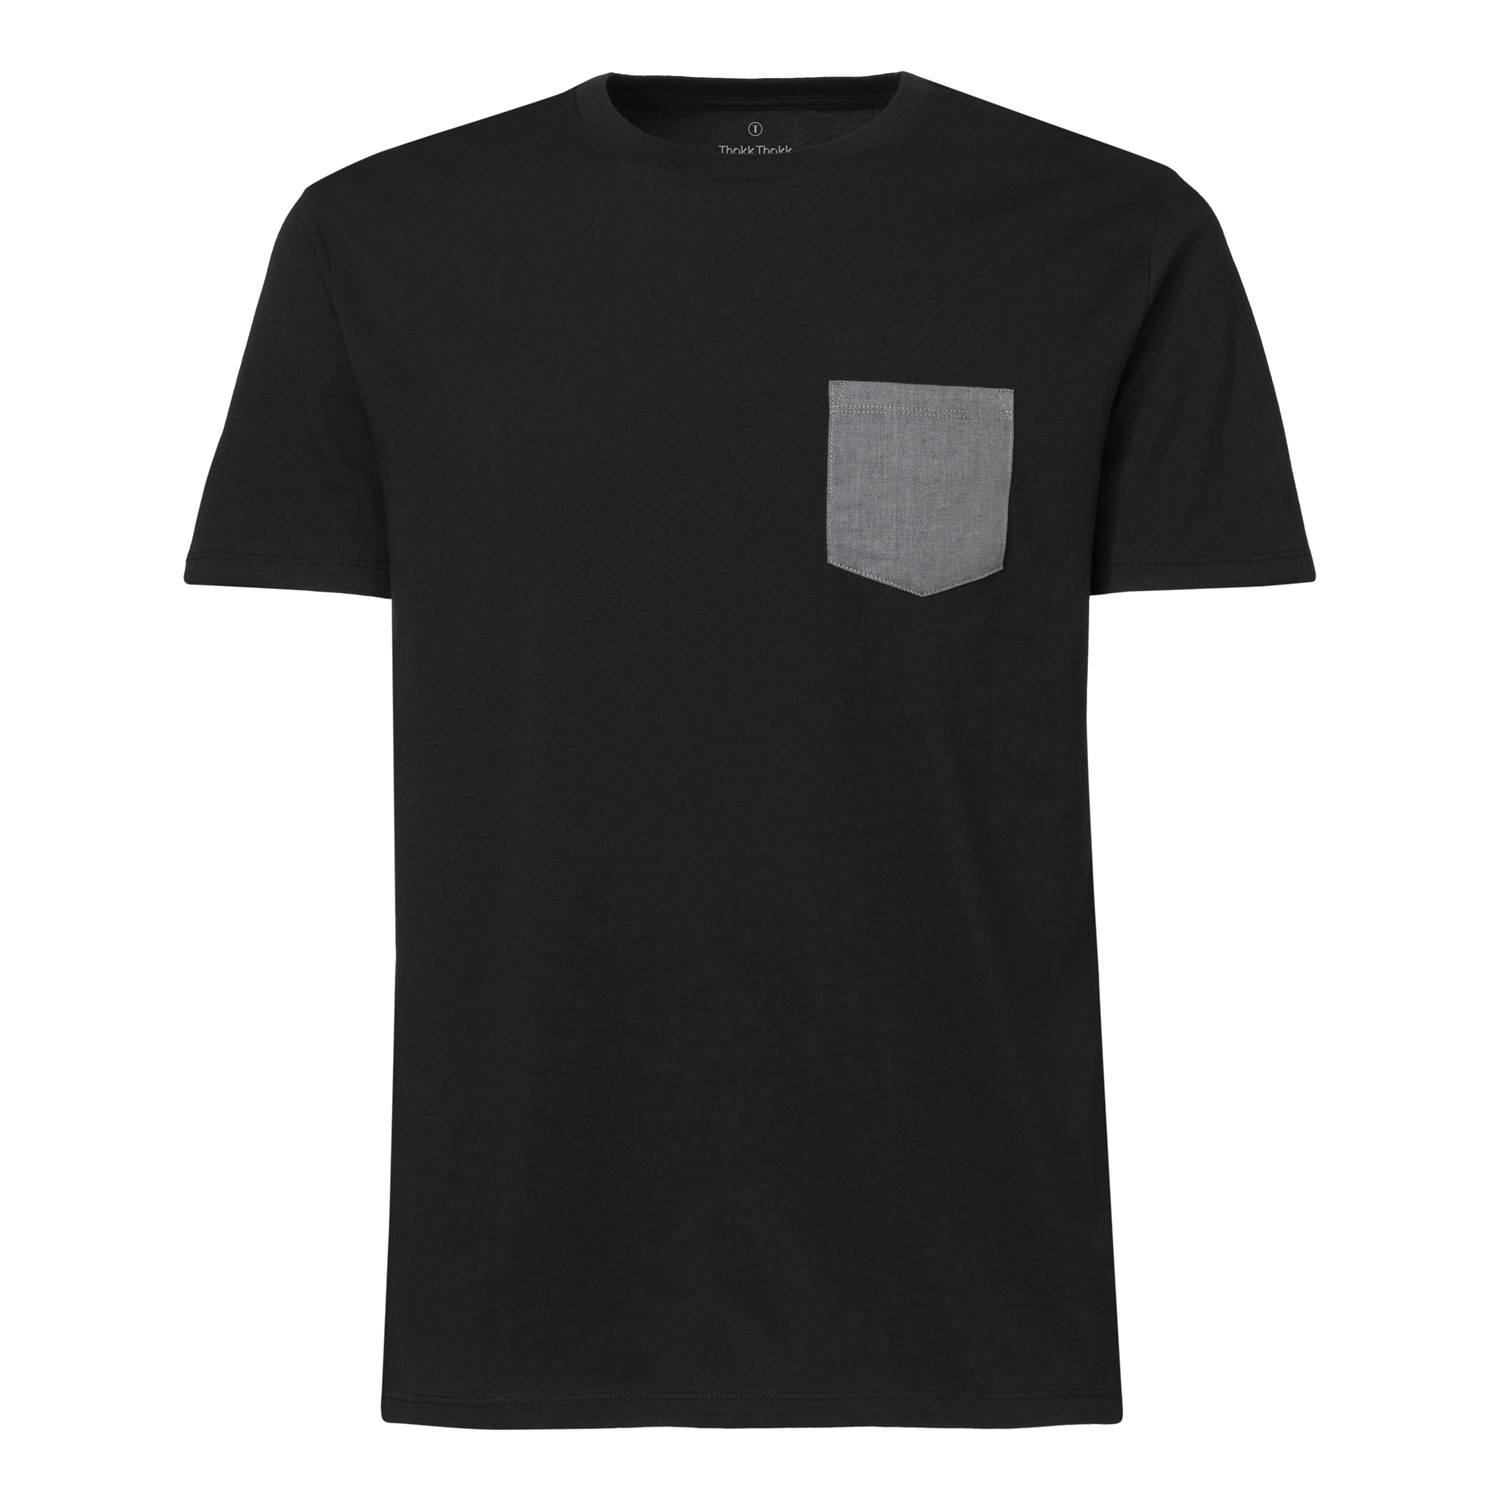 Shirts with pocket